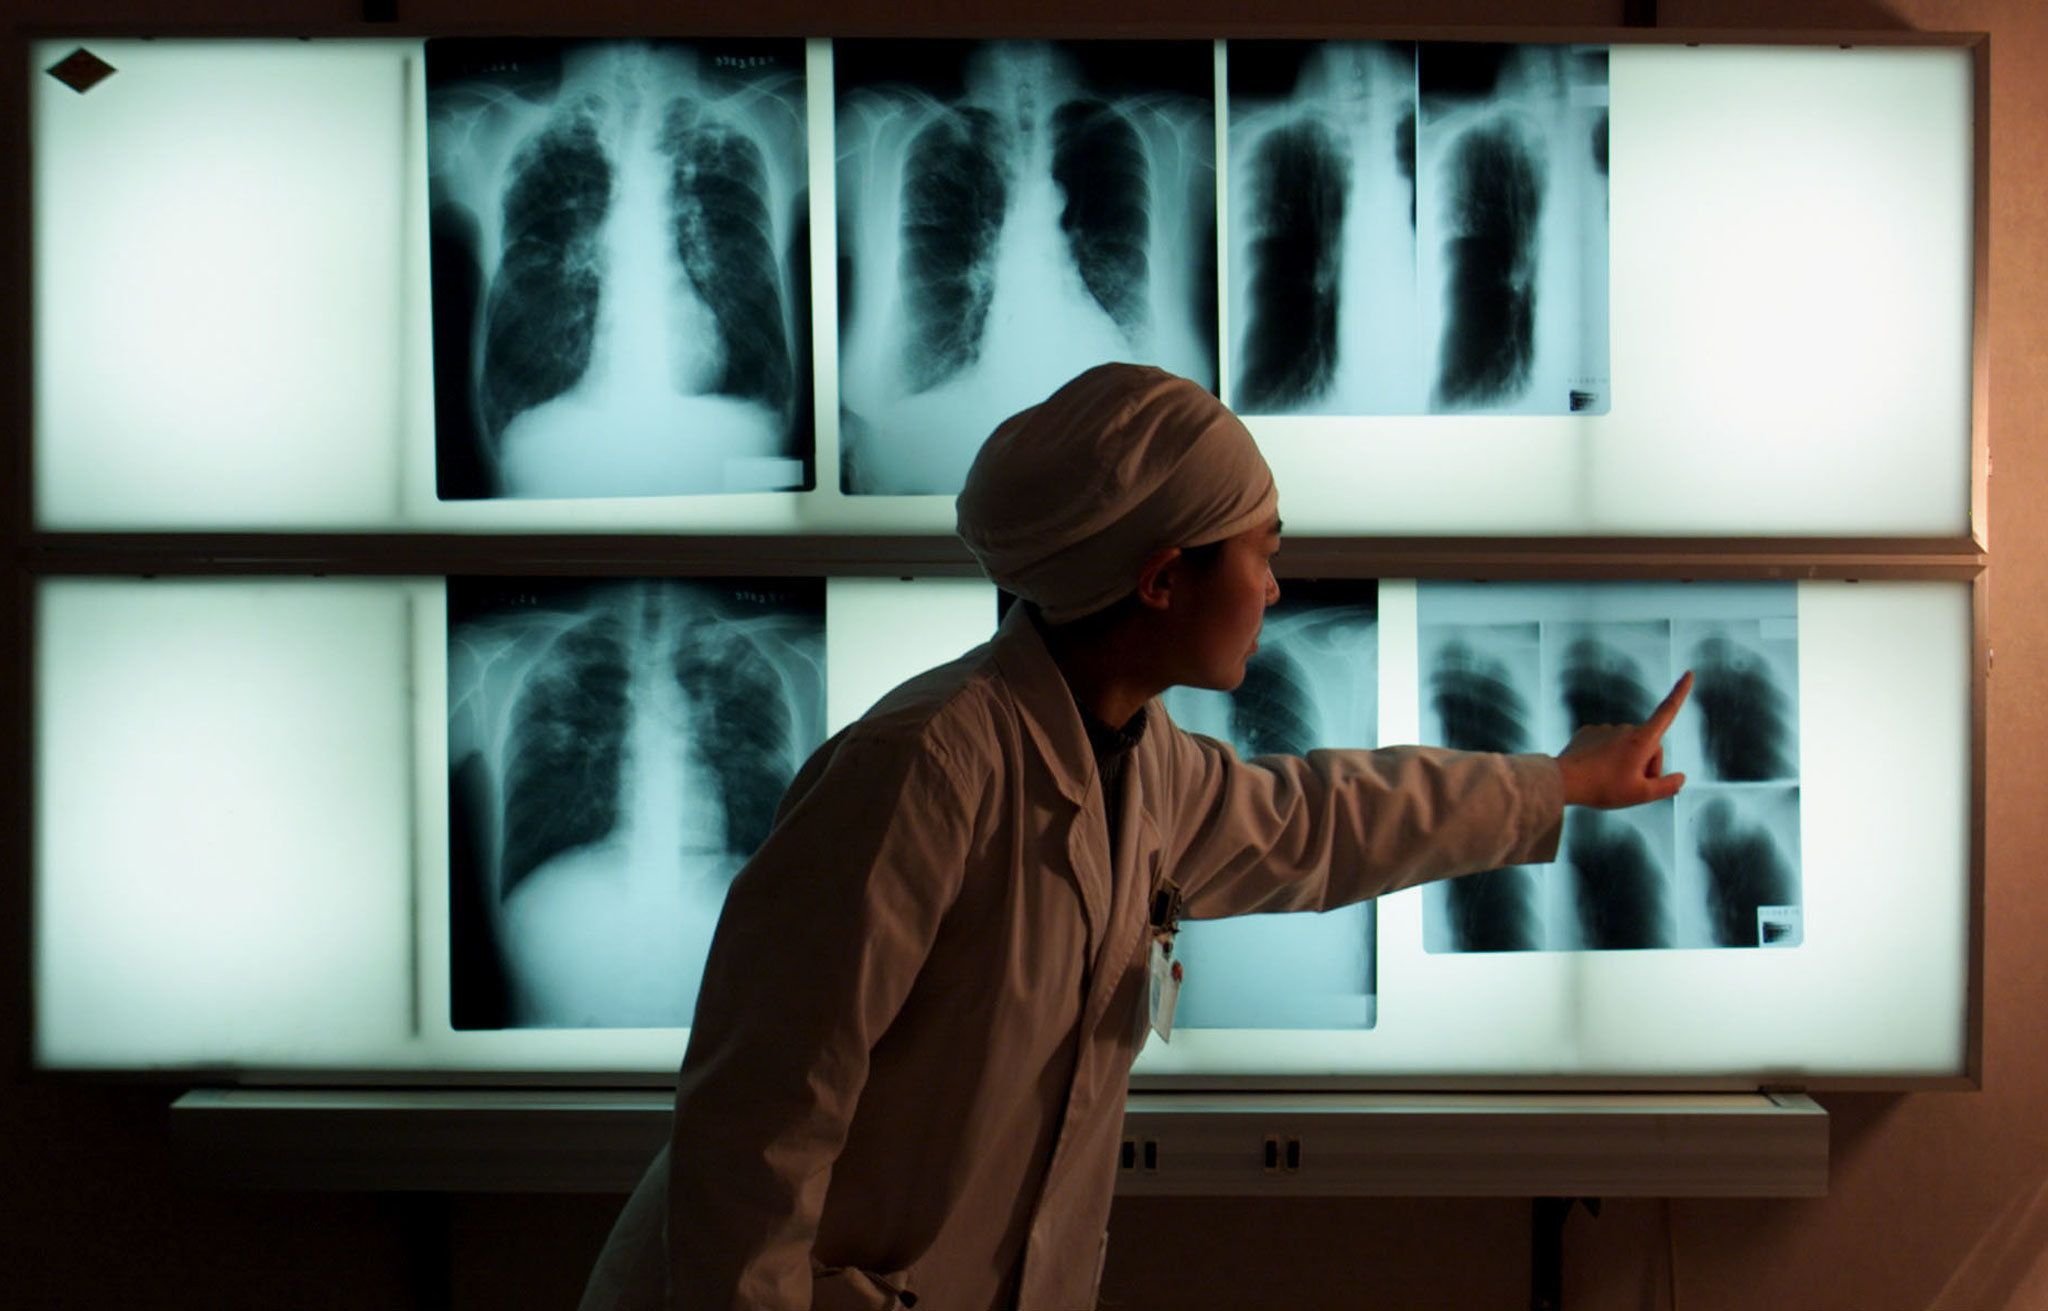 A Chinese doctor examines an x-ray of a tuberculosis patient at the Beijing Tuberculosis Hospital March 18. Tuberculosis remains the most deadly infectious disease in China accounting for more than 250,000 deaths each year. China, which has more than six million tuberculosis patients who are mainly from rural areas, has been working closely with the World Bank and World Health Organisation to control the disease. March 24 marks the World Tuberculosis Day. Picture taken 18MAR99.  ASW/DL/ME